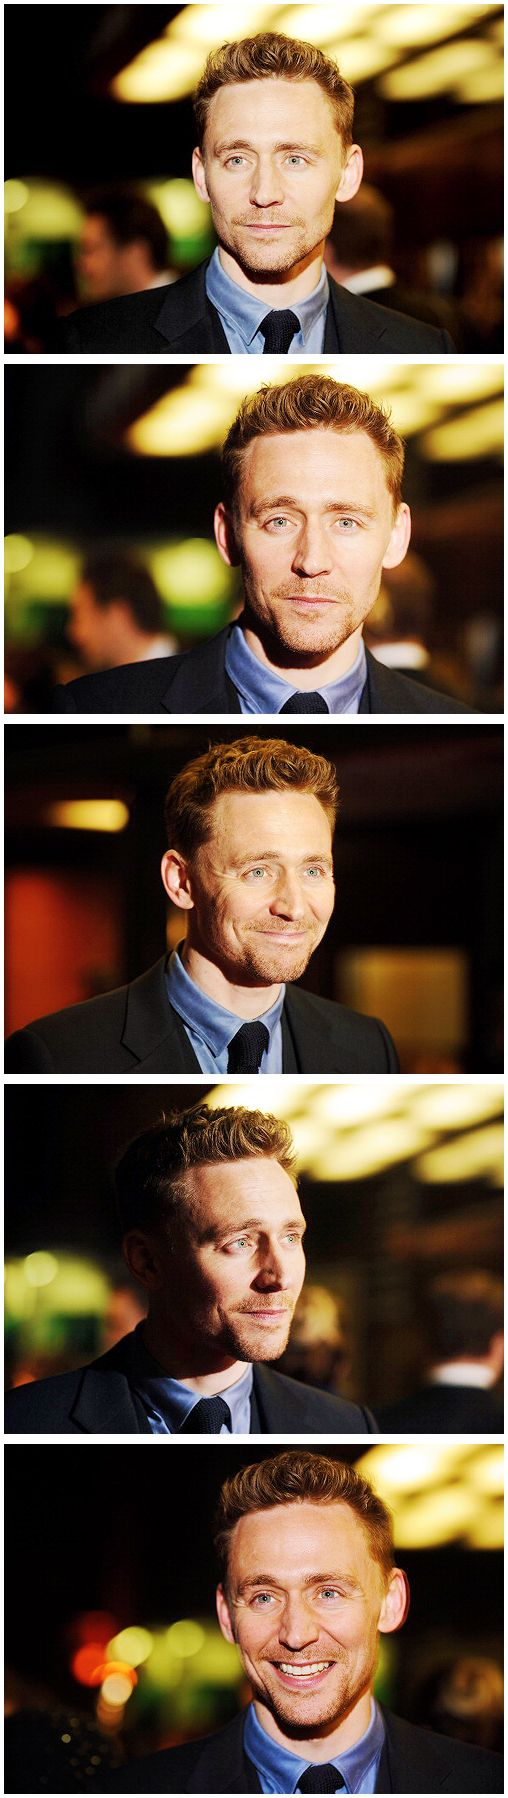 Tom! You're too adorably handsome. You have to stop because it's interfering with my sleep and my work and my study.